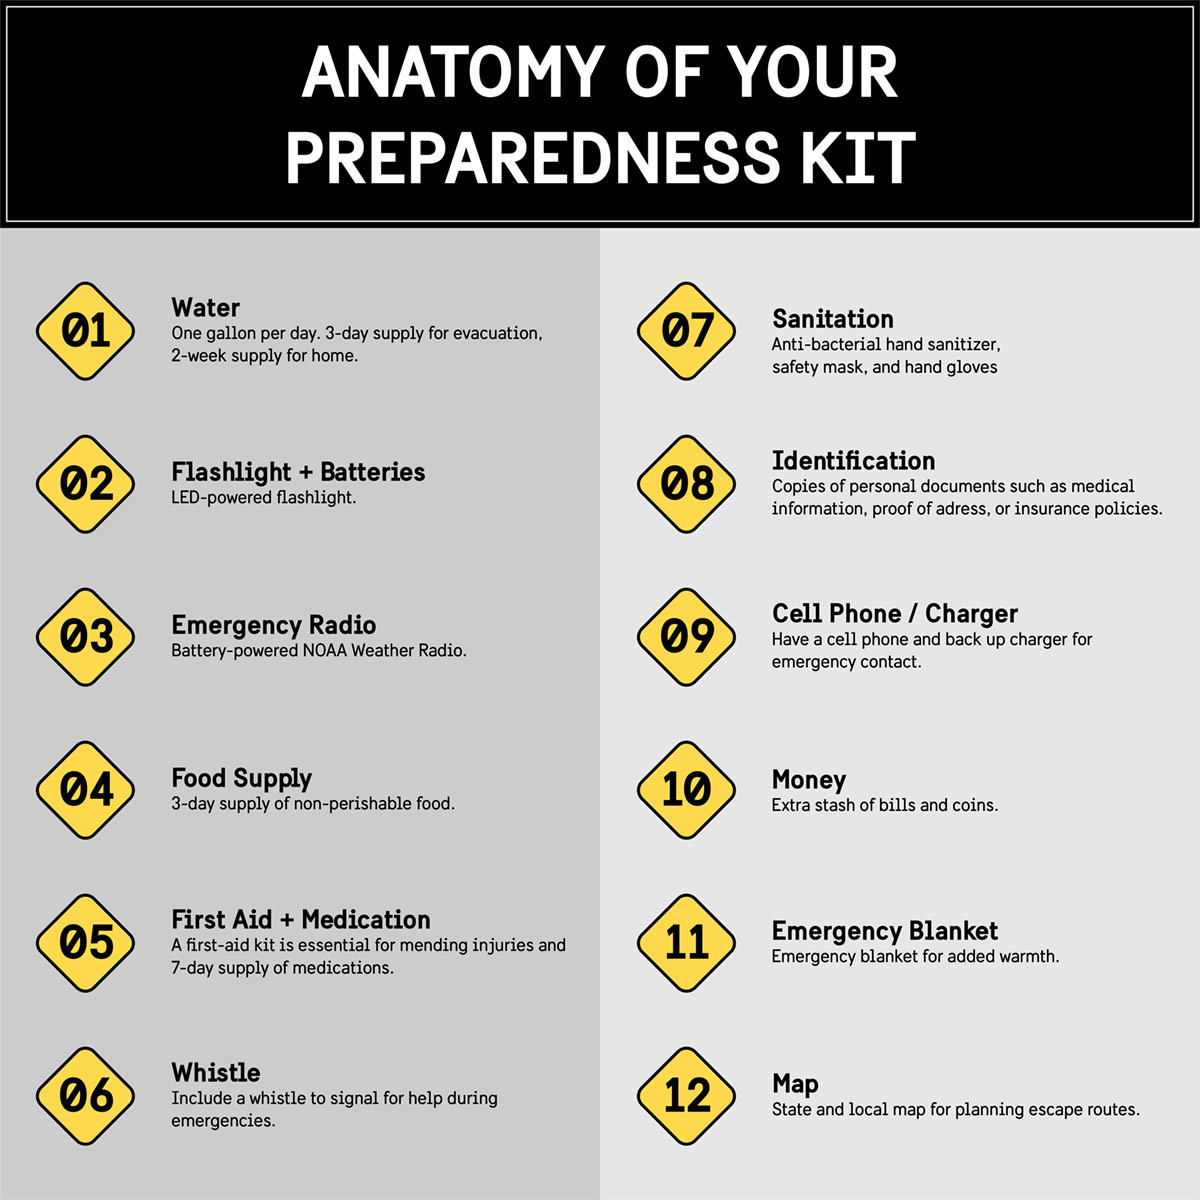 pelican professional blog anatomy of preparedness kit lit